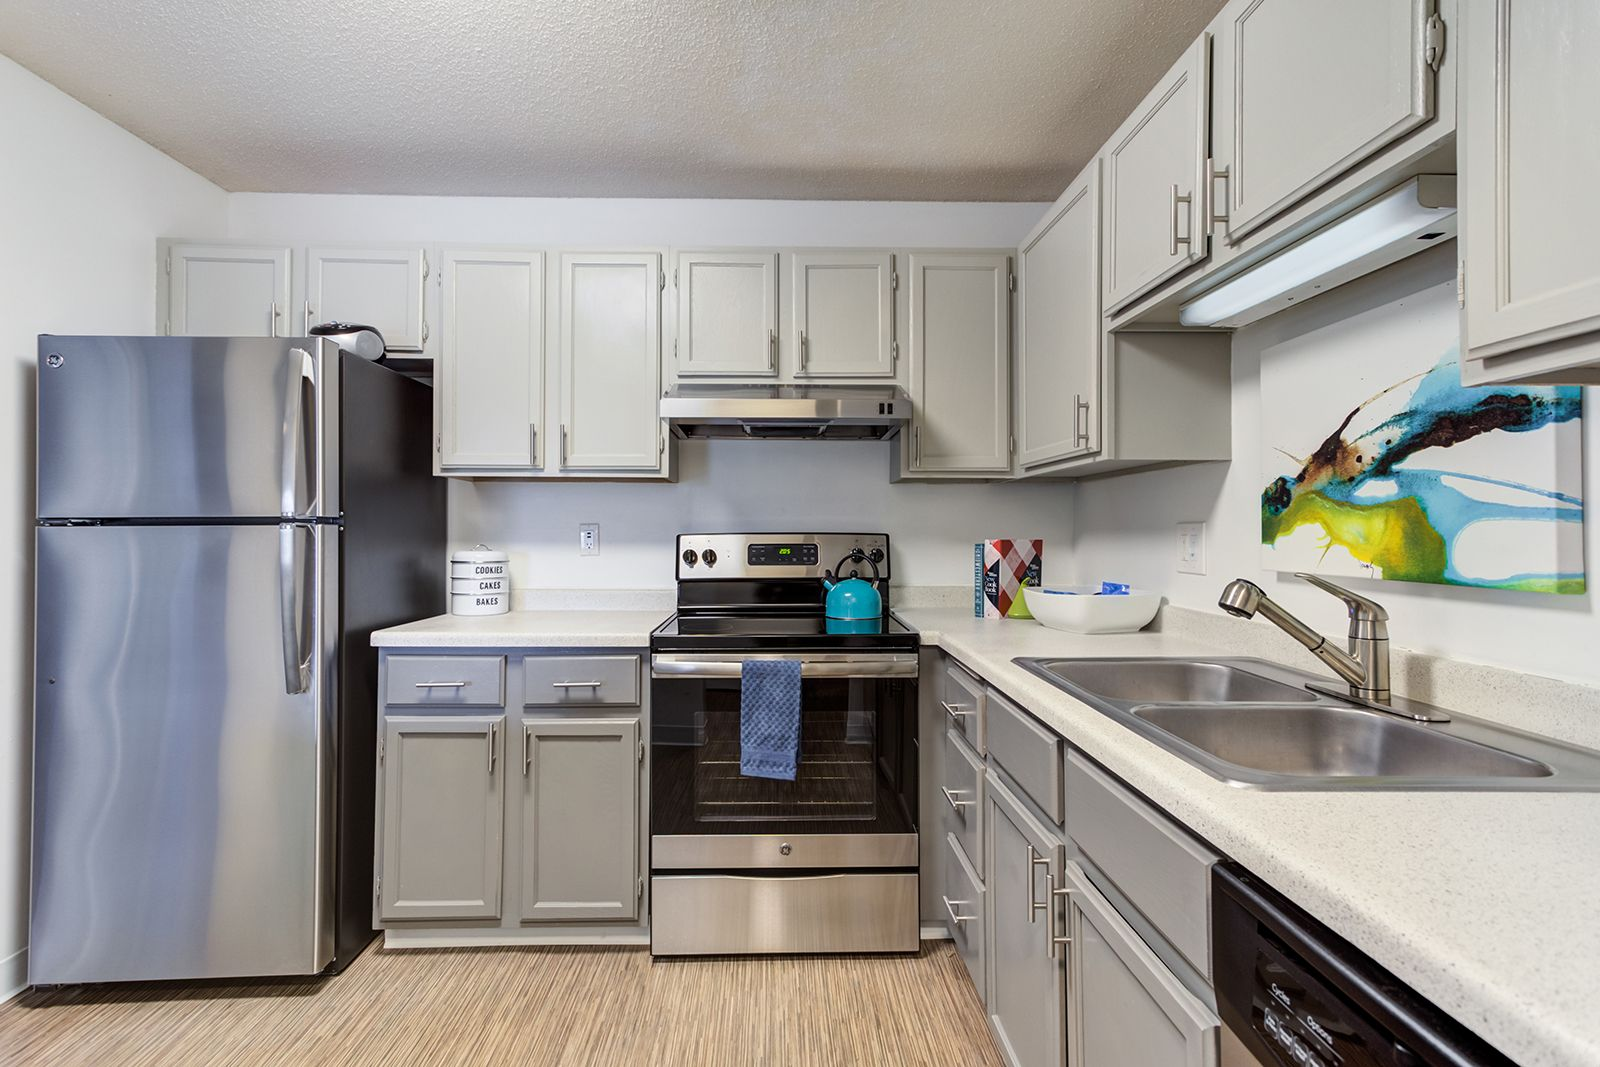 These Upgraded Kitchens At Twelve501 Apartments In Burnsville Are The Perfect Place For Entertaining Guests In 2020 Entertaining Guests Two Tone Cabinets Apartment